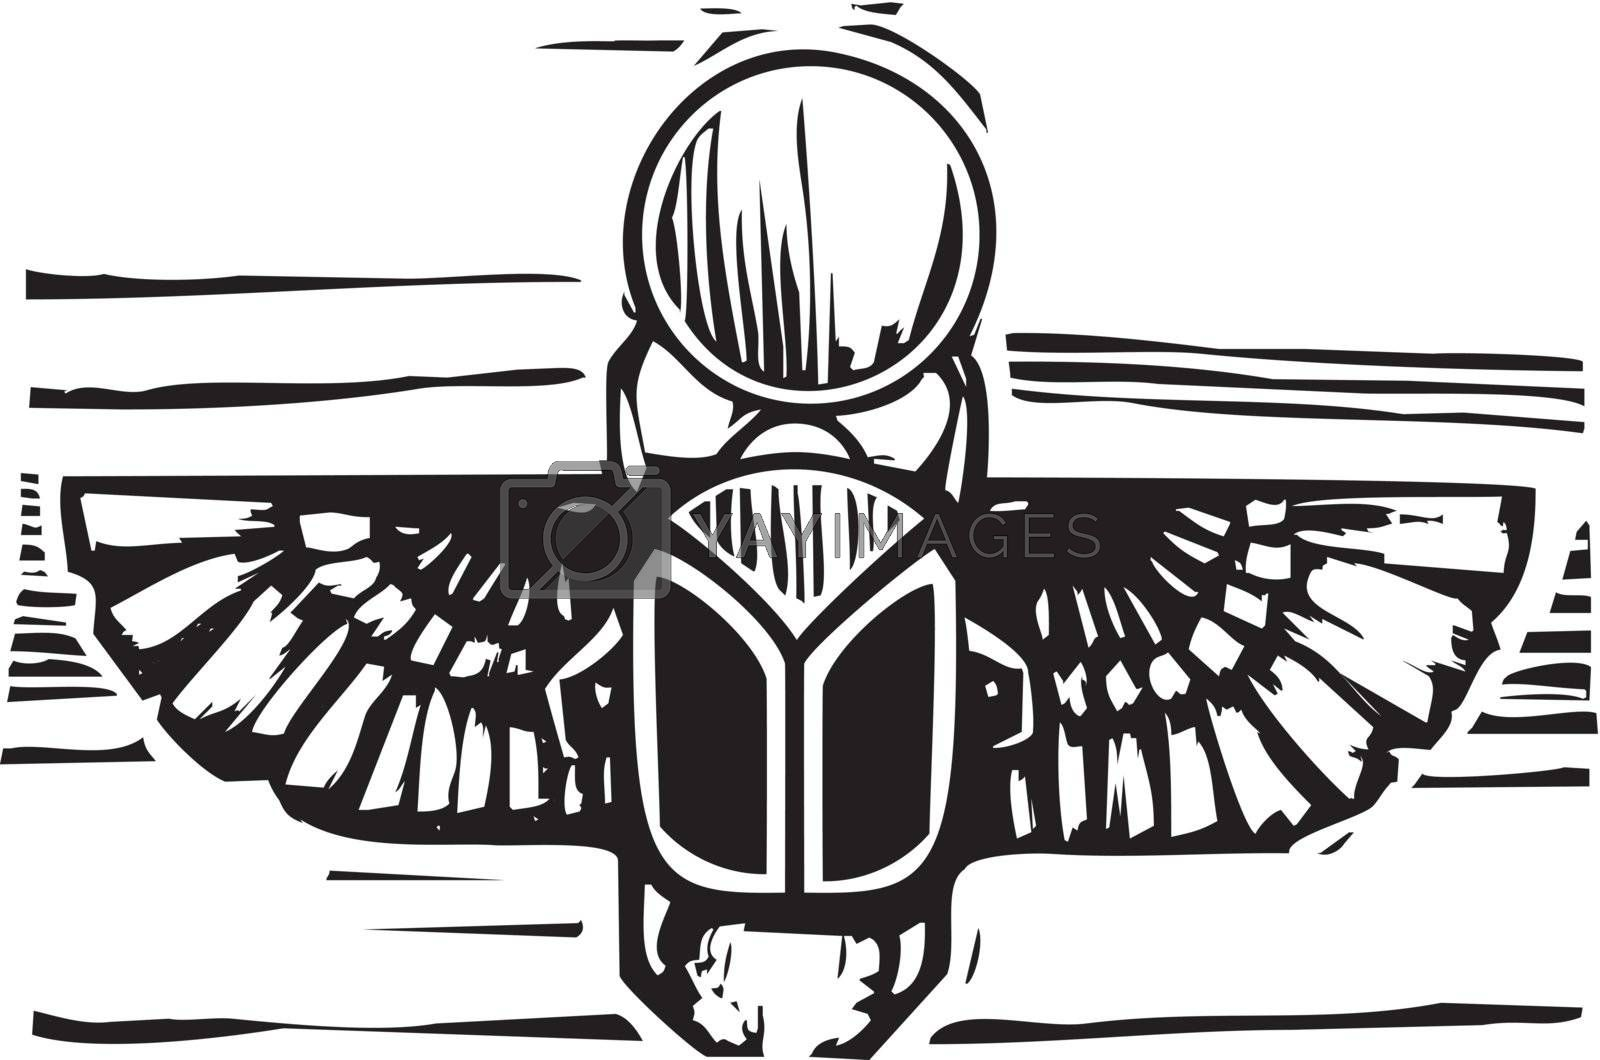 Woodcut style an Egyptian winged scarab beetle holding the sun.